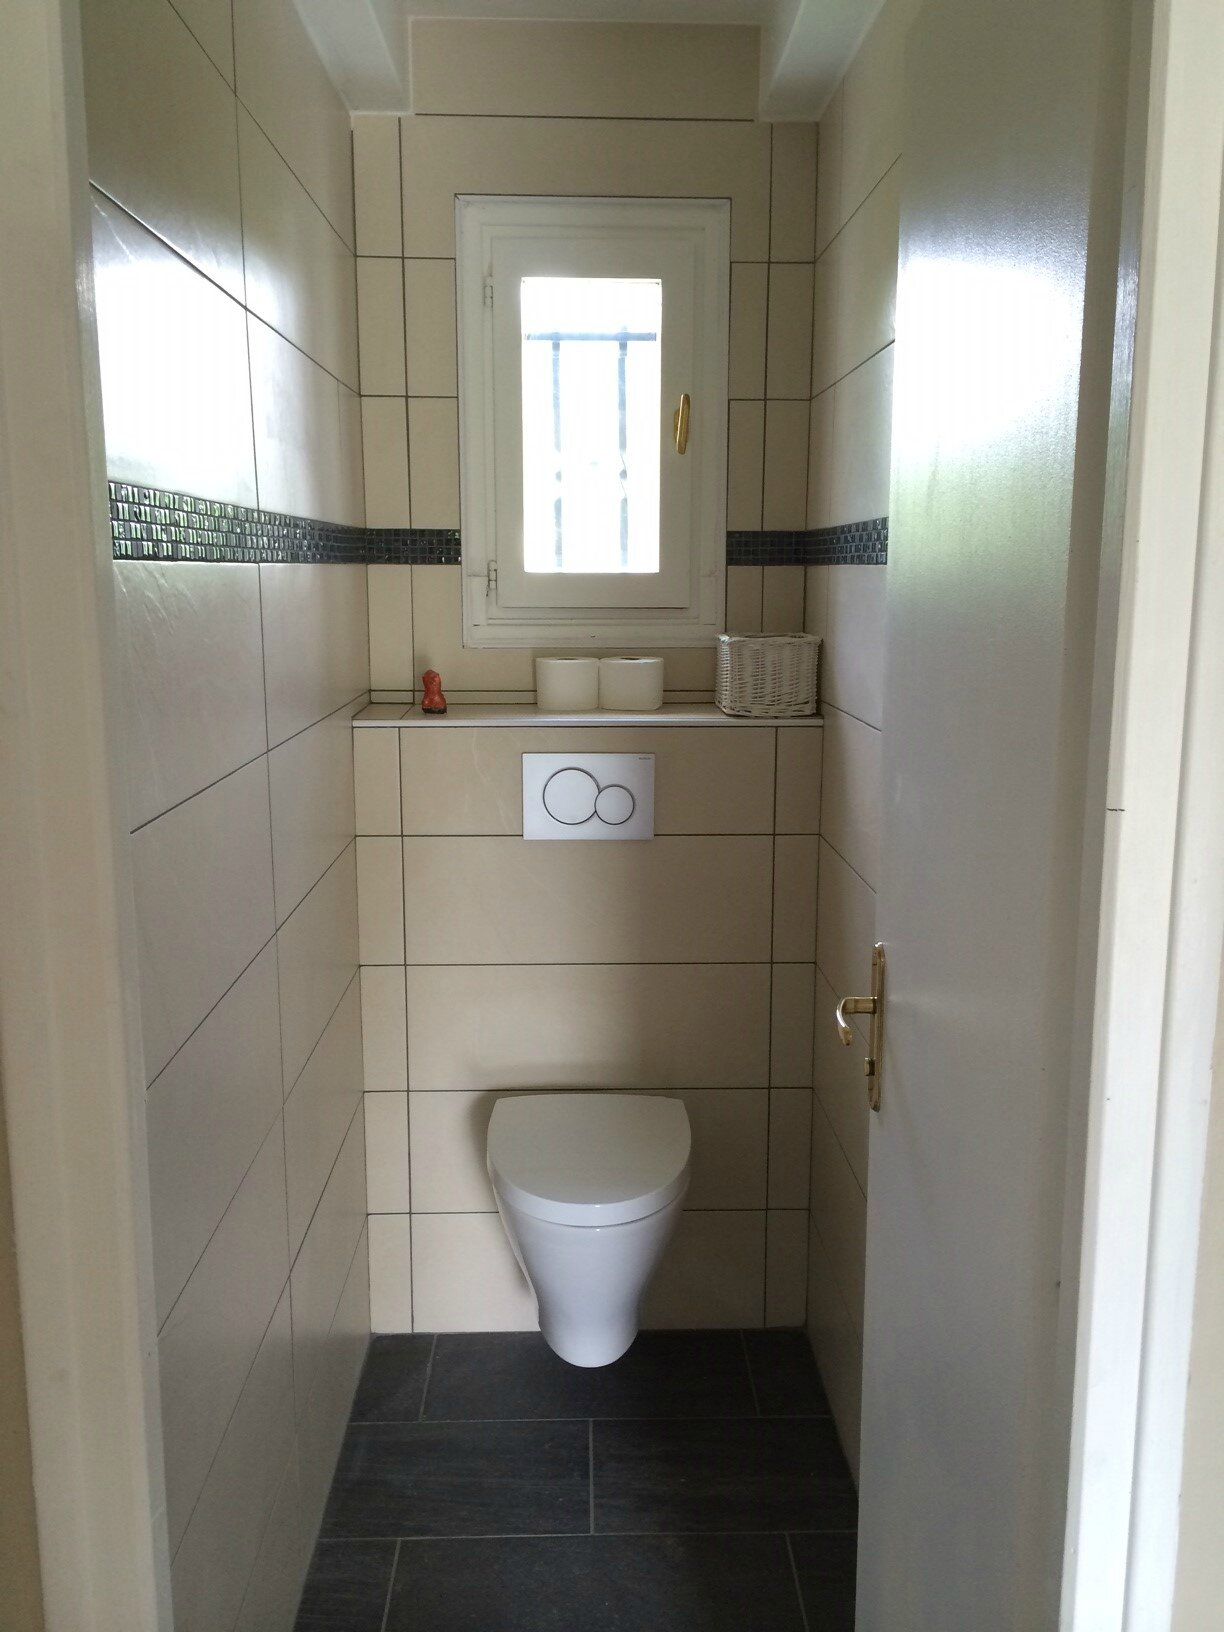 Wc suspendu carrelagebommart for Photo wc suspendu